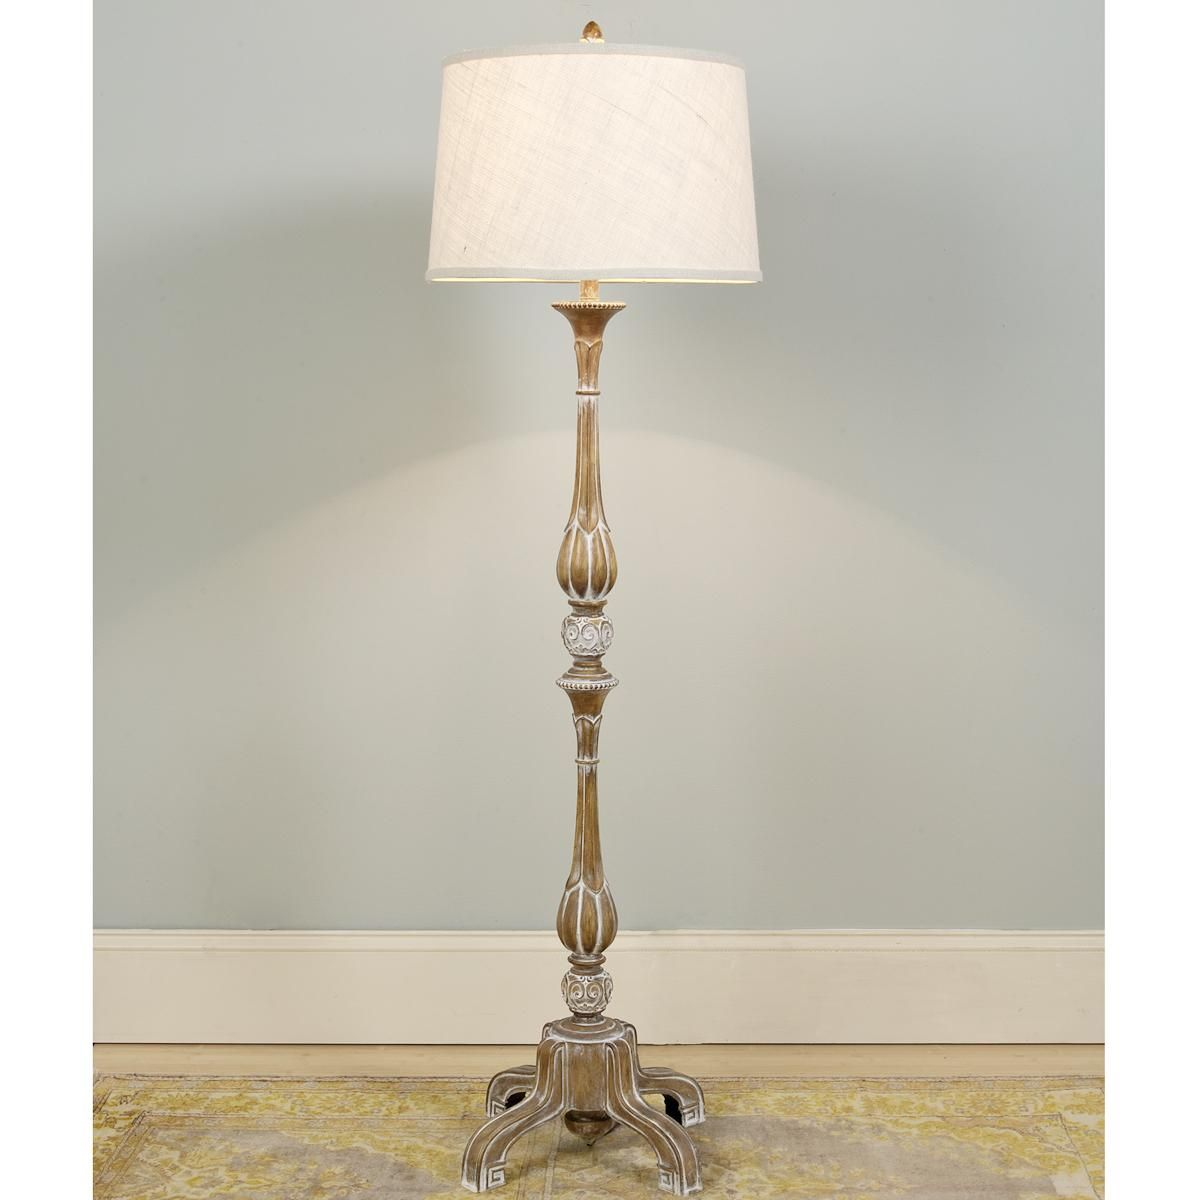 French Provincial Pickled Wood Floor Lamp Wood Floor Lamp Country Floor Lamps French Lamp